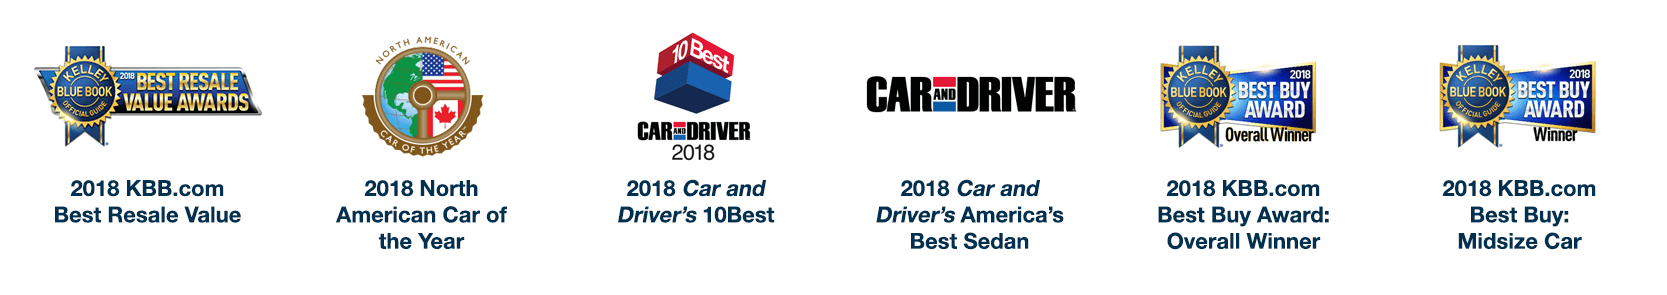 2018 Honda Accord Awards